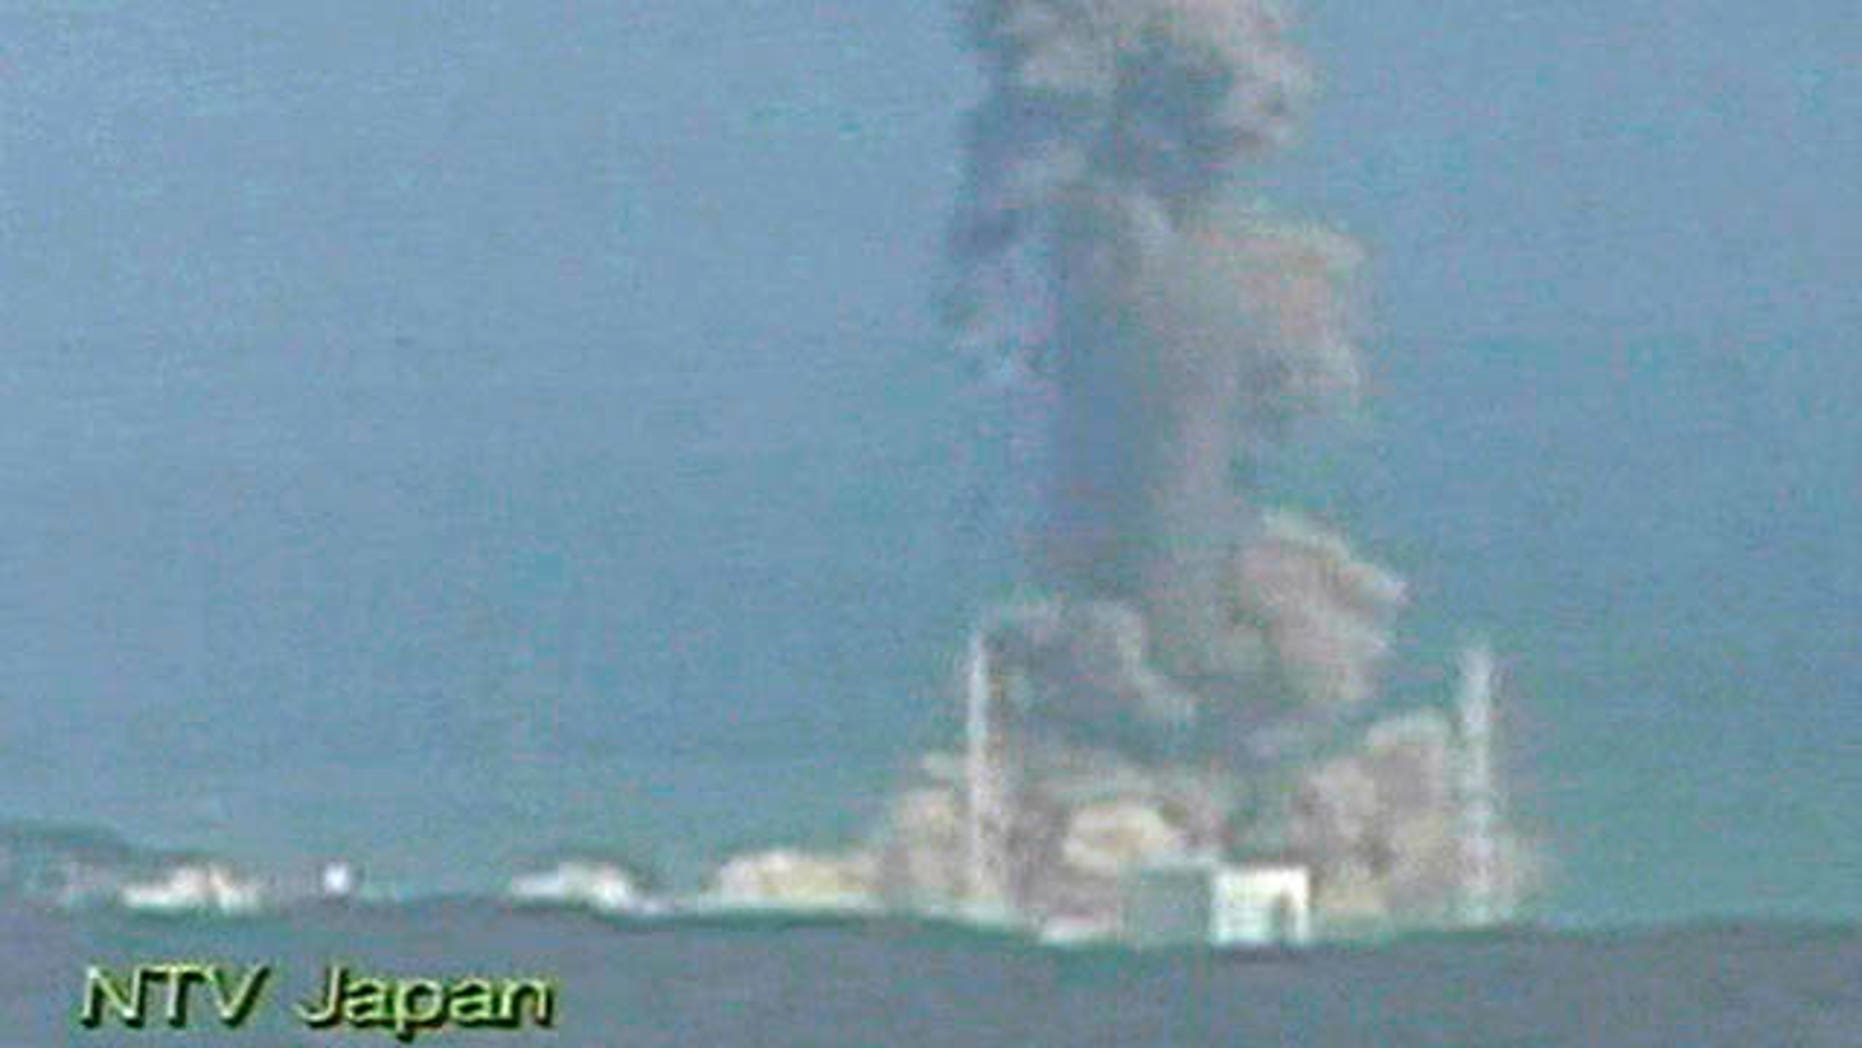 March 14, 2011: In this image made off Japan's NTV/NNN Japan television footage, smoke ascends from the Fukushima Dai-ichi nuclear plant's Unit 3 in Okumamachi, Fukushima Prefecture, northern Japan.